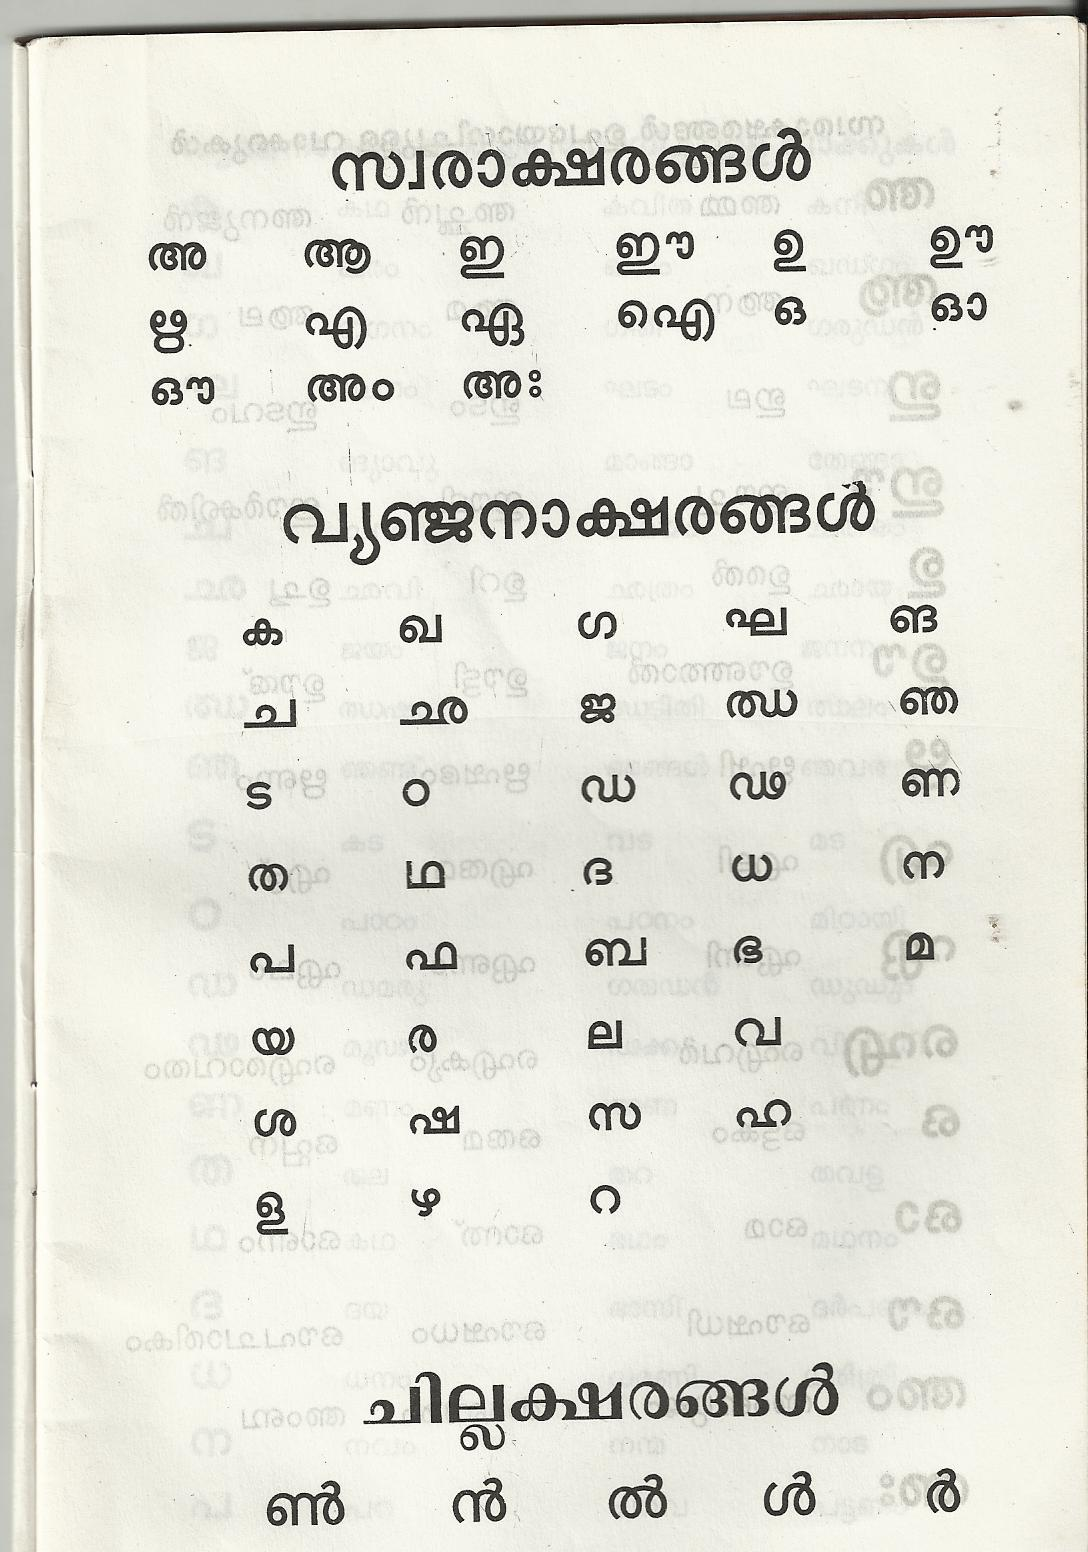 Malayalam Love Letter In English Cum Face Mature - Page...